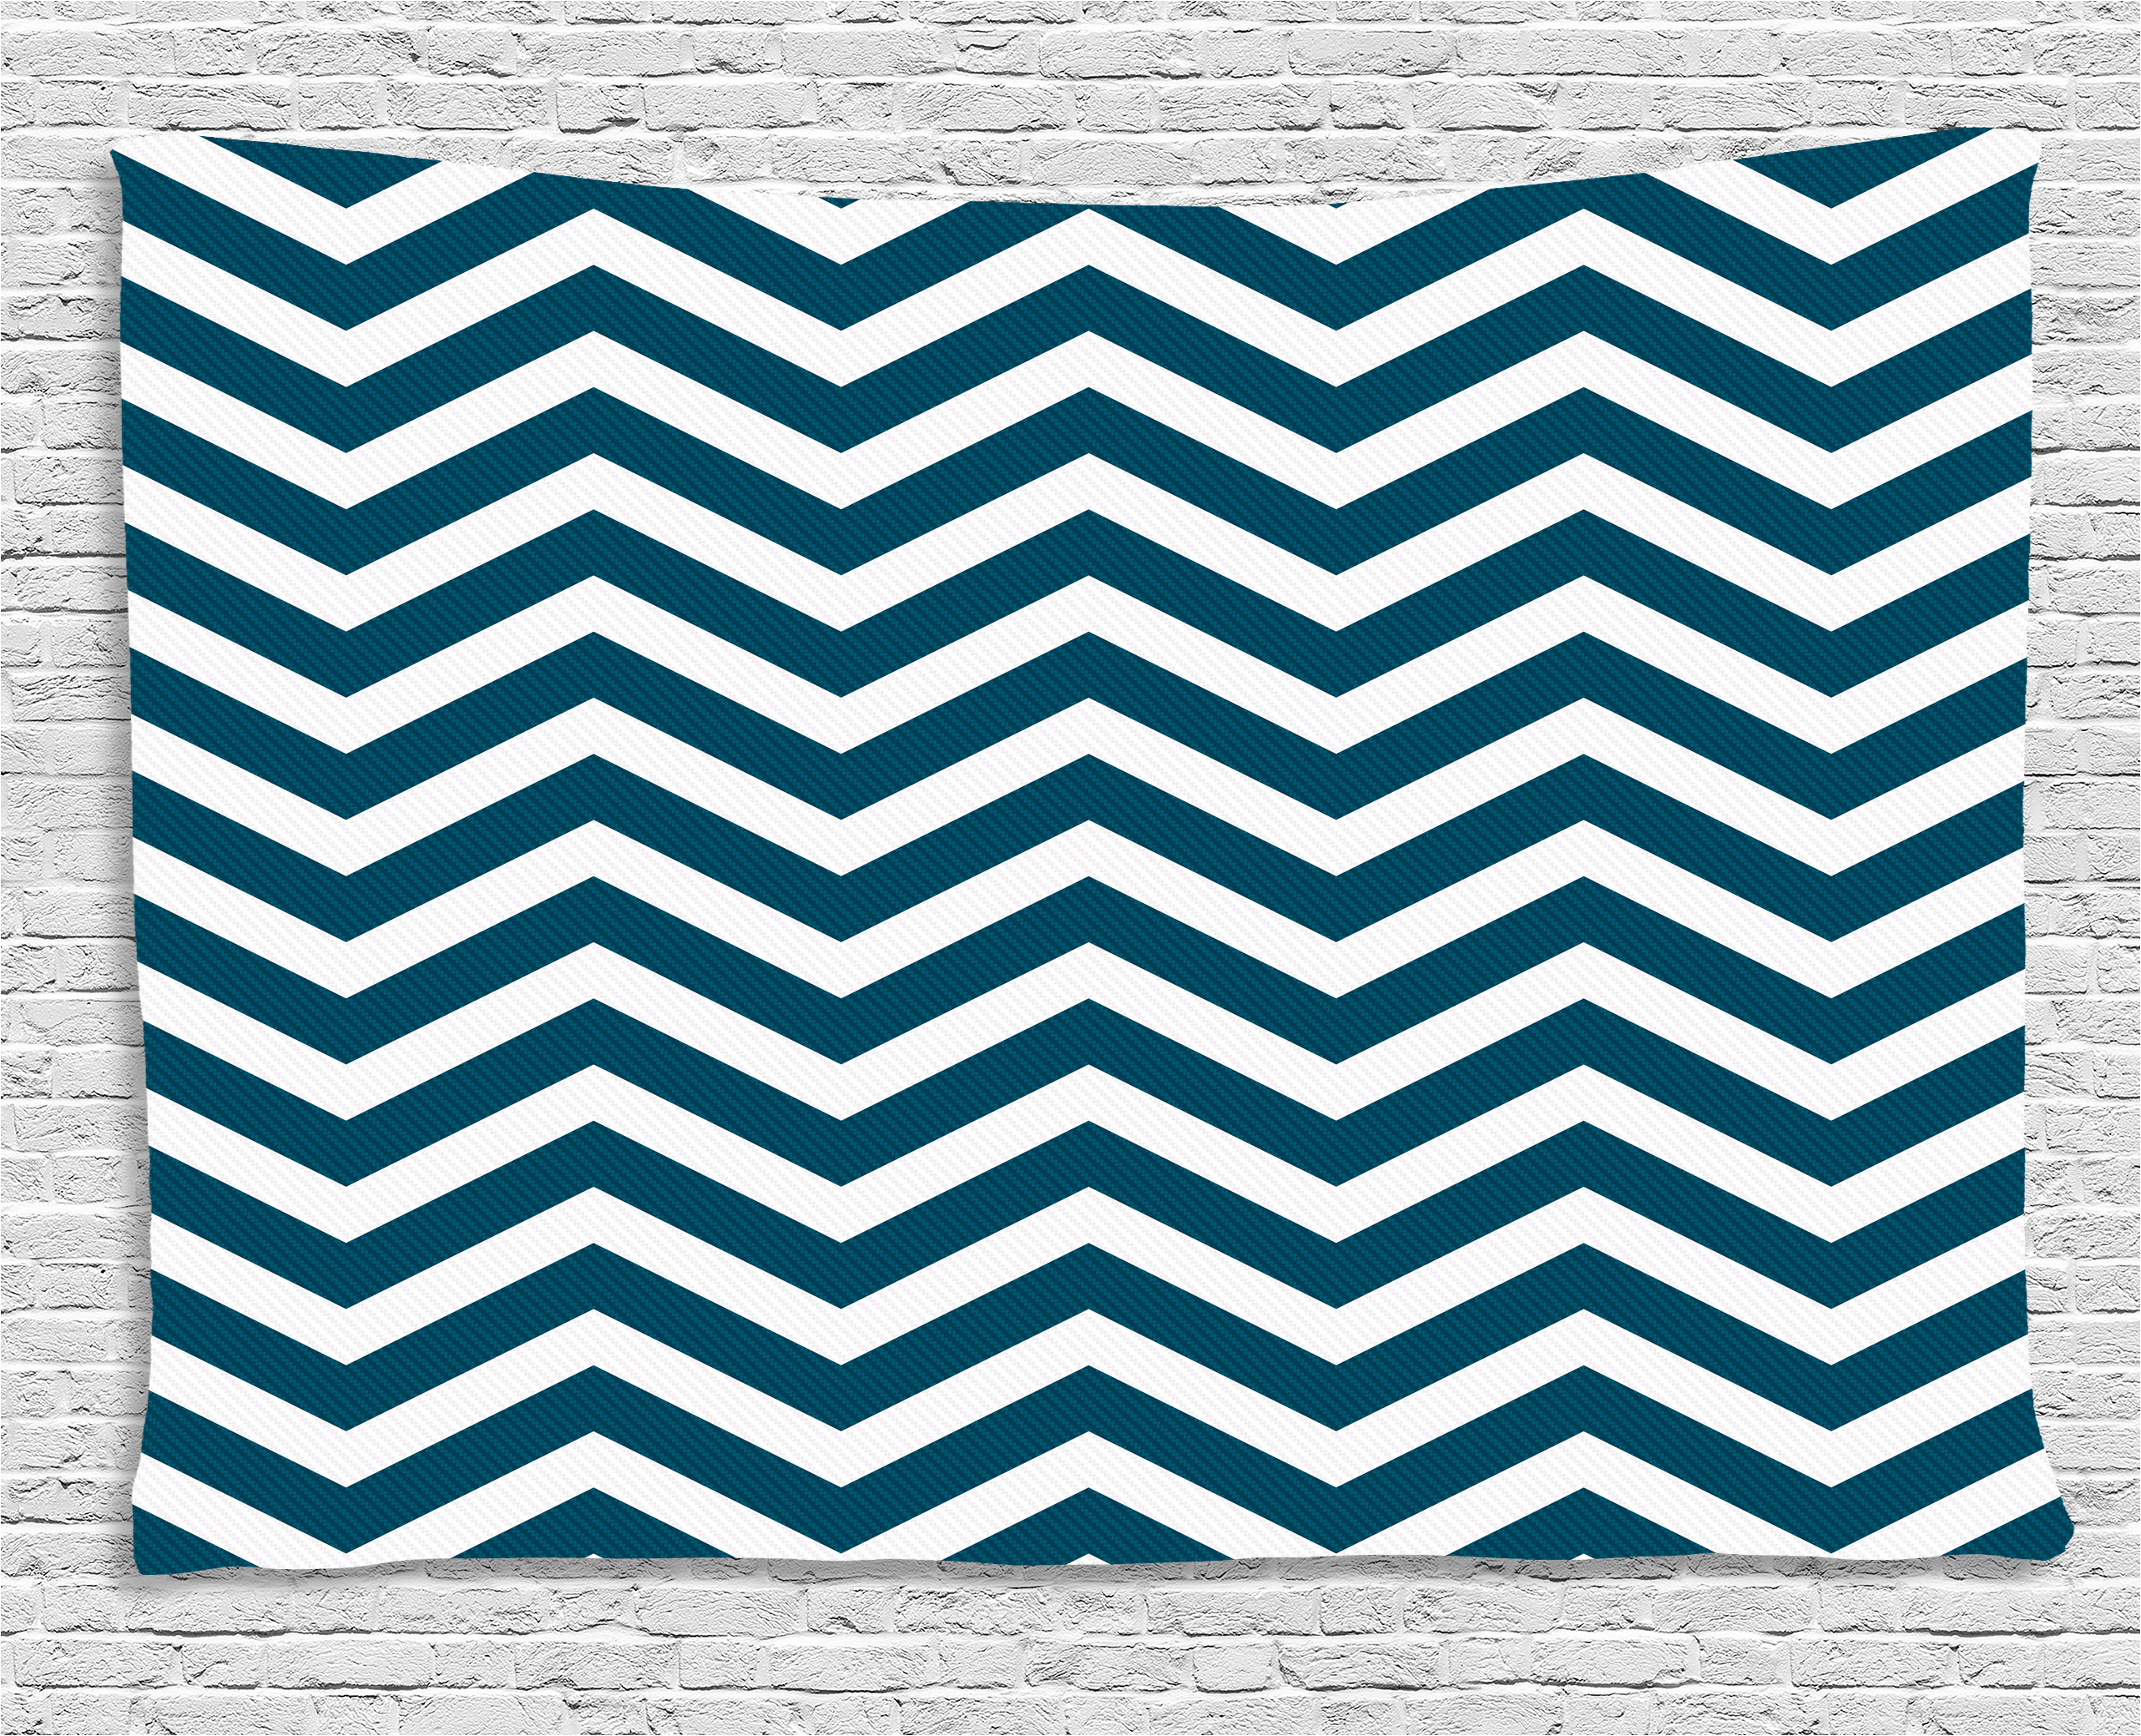 Navy Tapestry, Zigzag Chevron Geometrical Design Lines Sea Waves Inspired  Decor Art Print, Wall